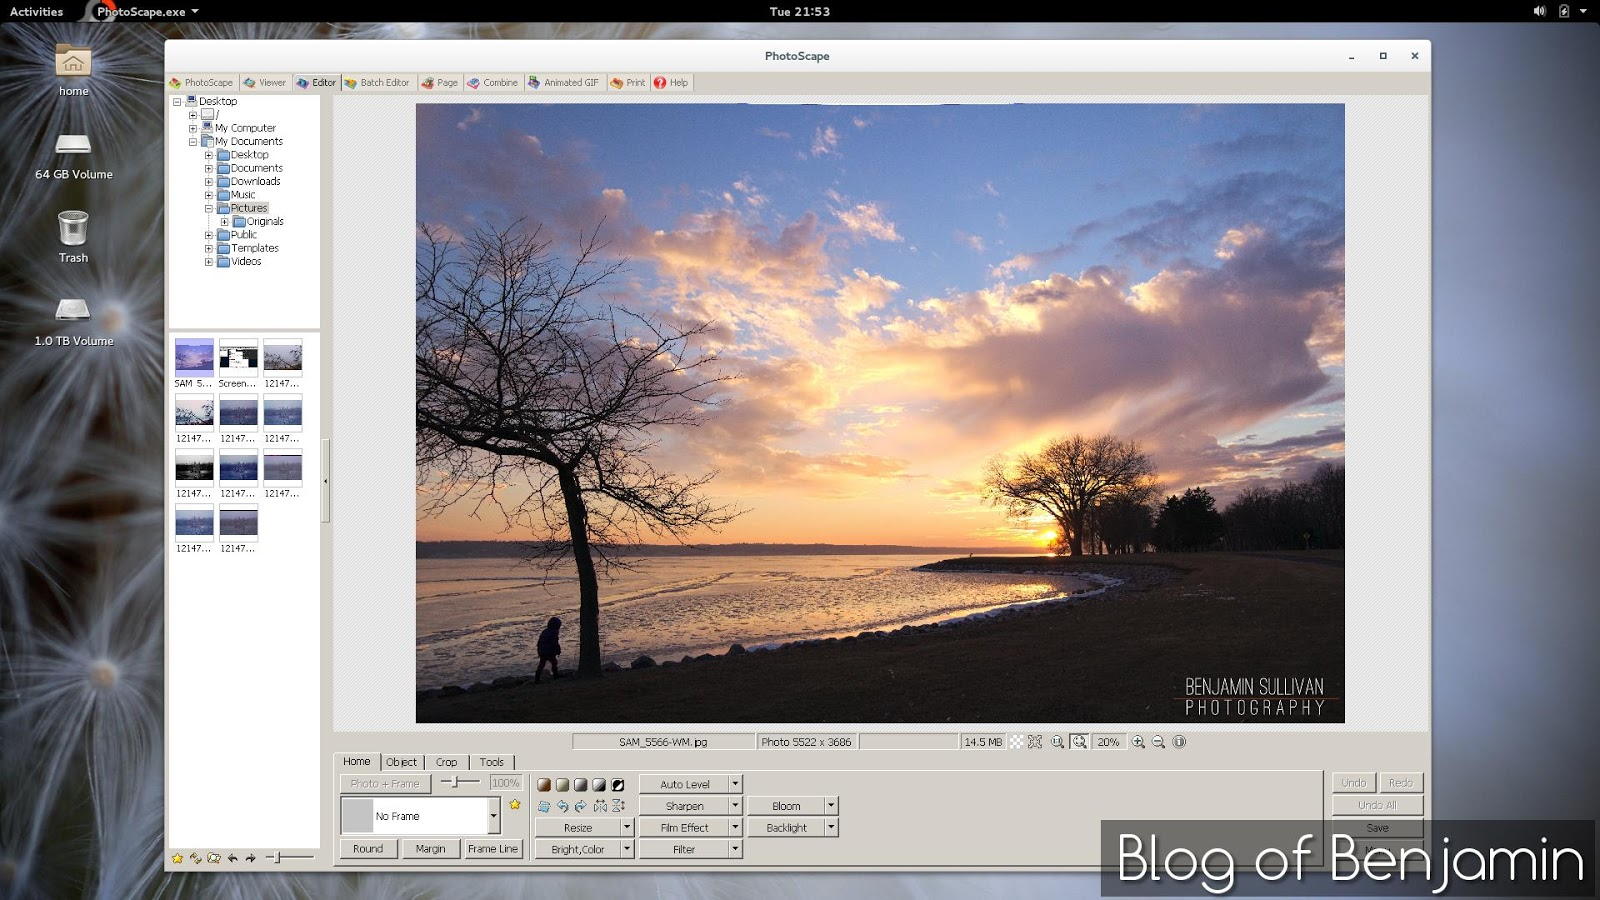 How to Install PhotoScape on Fedora 21, Red Hat, Open Suse